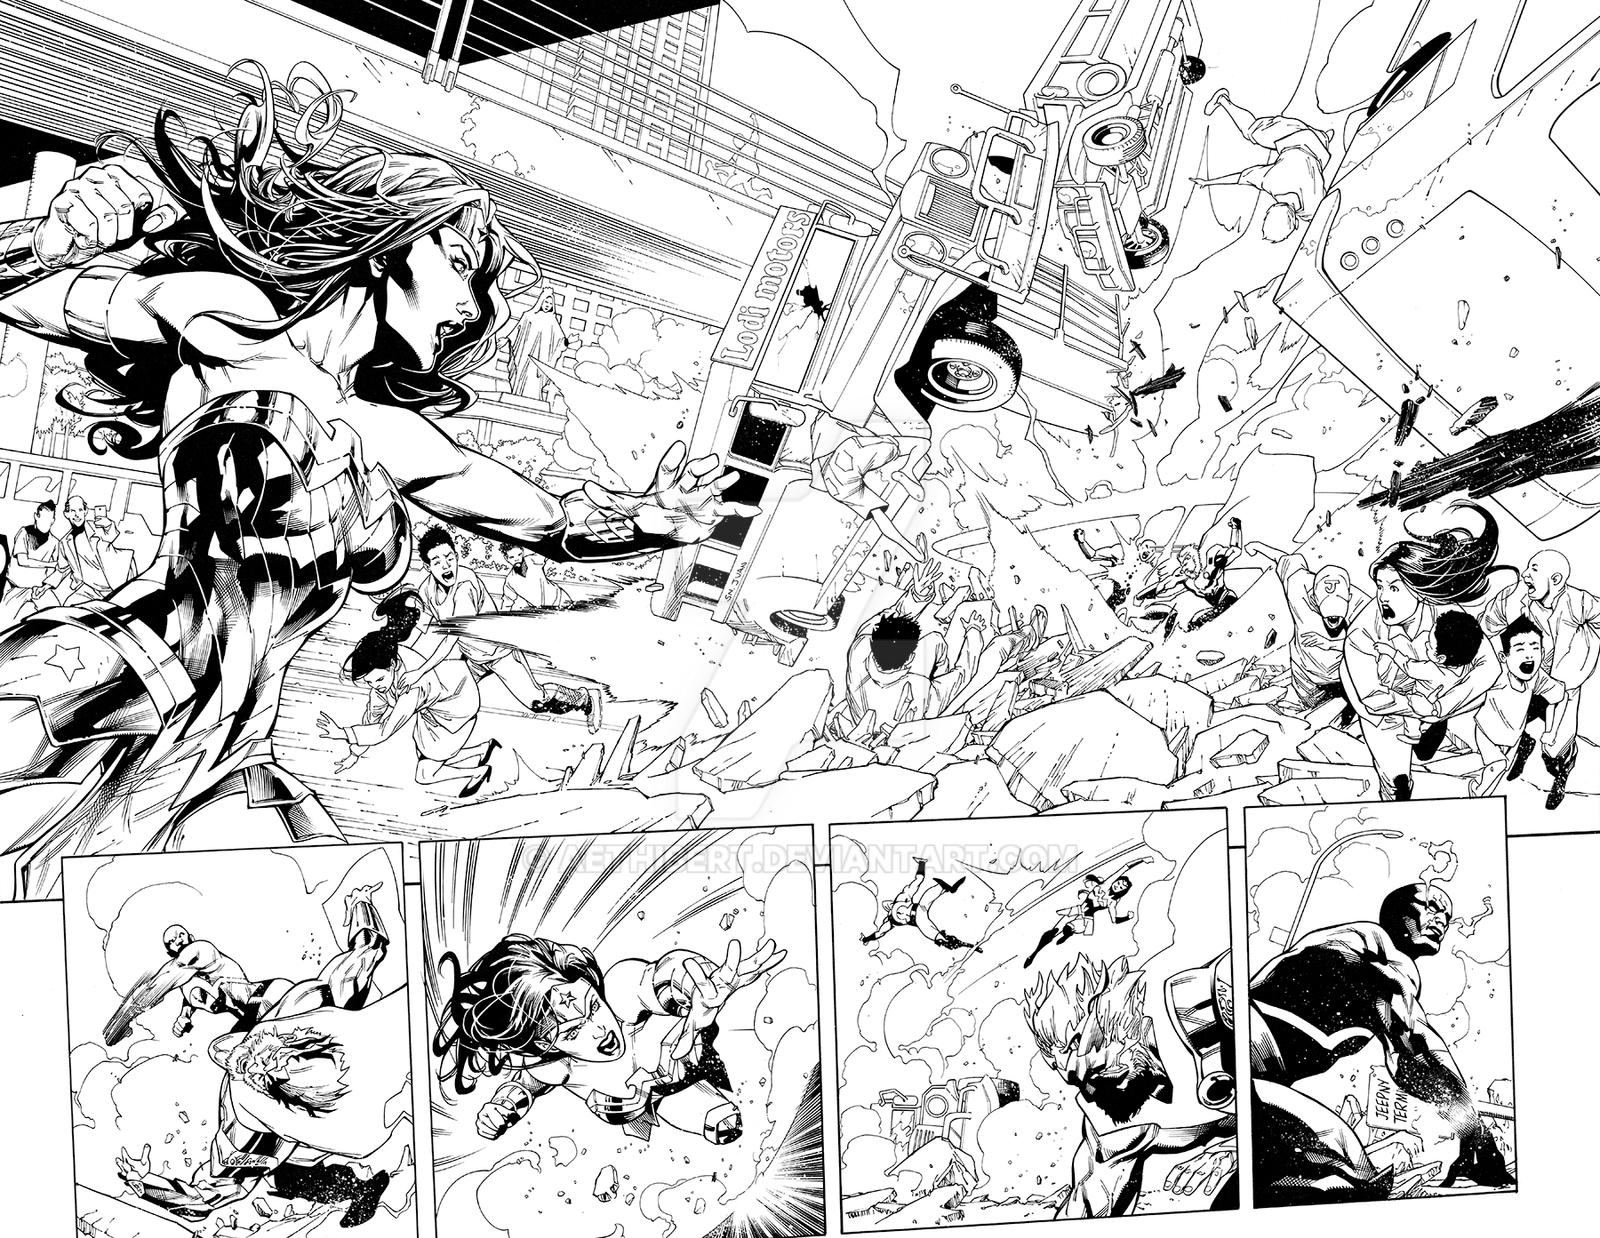 Wonder Woman Issue 37 Double Page by aethibert